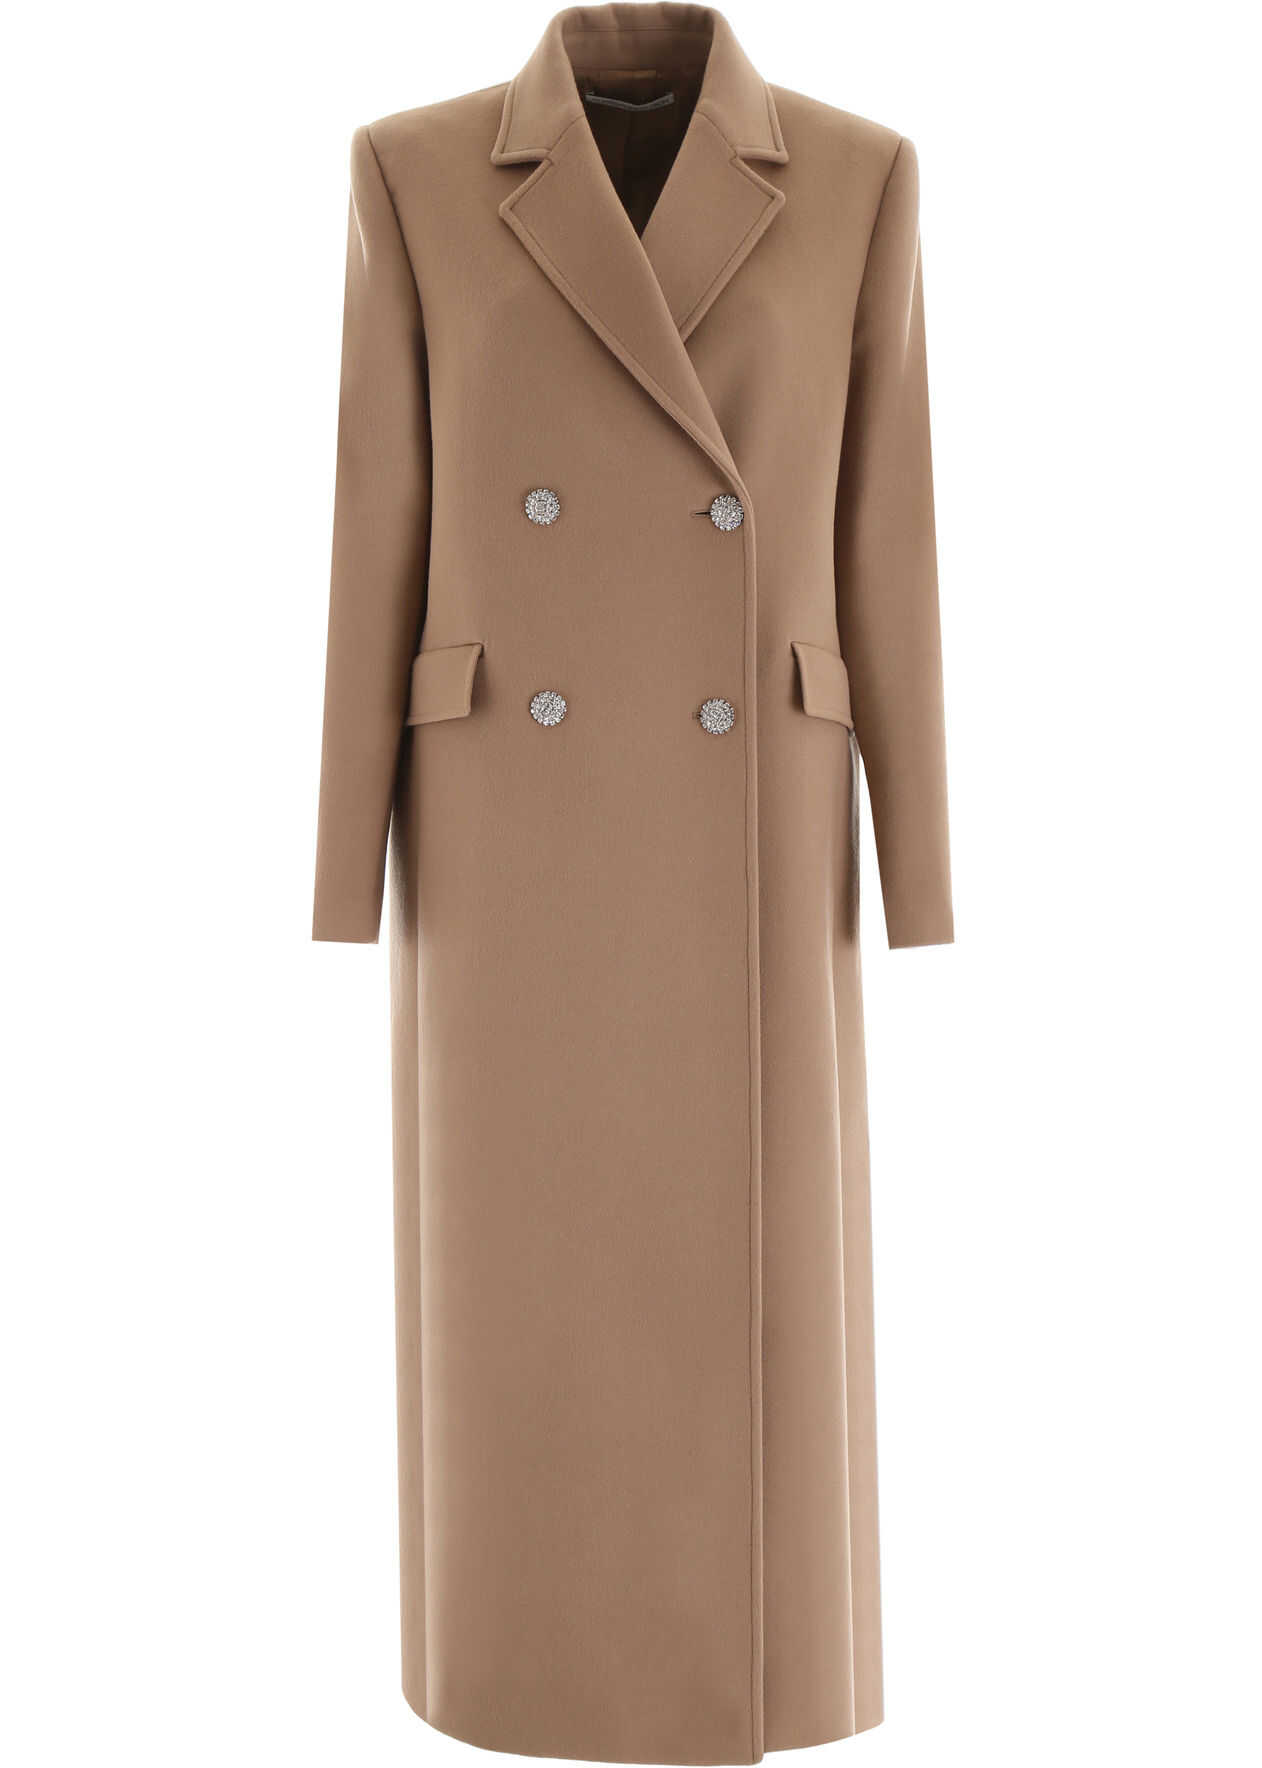 Alessandra Rich Coat With Embellished Buttons CAMEL